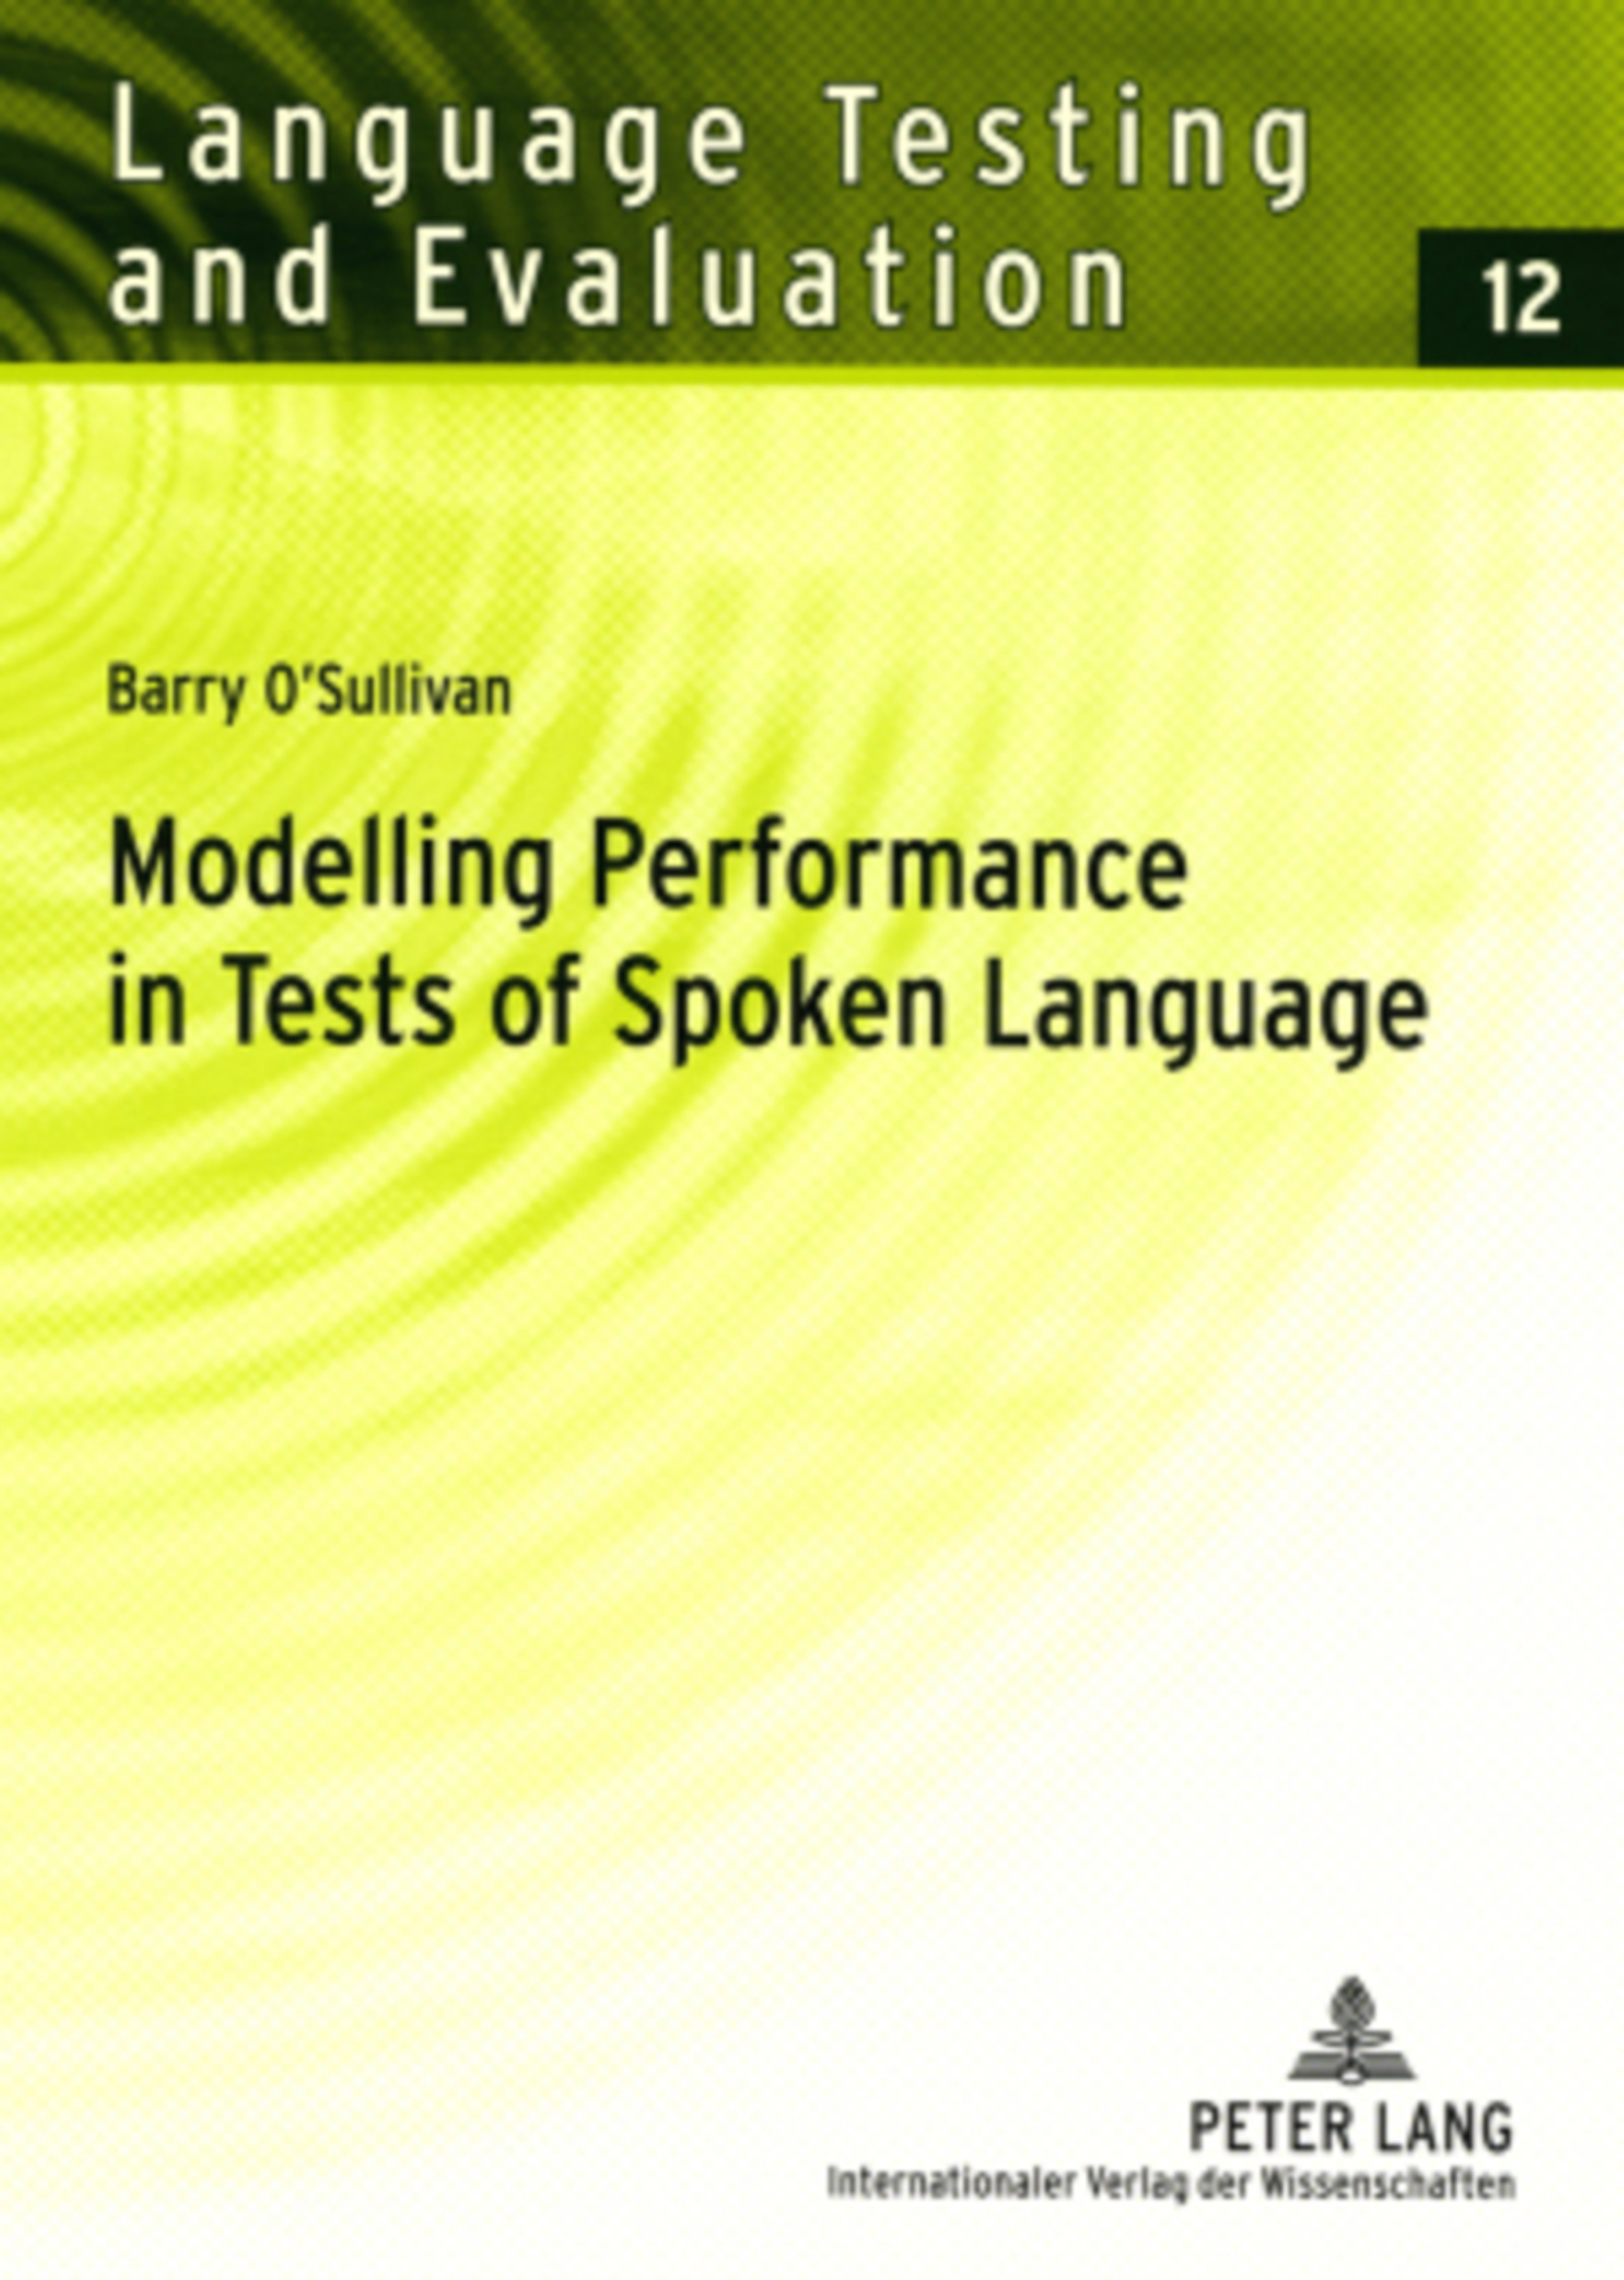 Title: Modelling Performance in Tests of Spoken Language